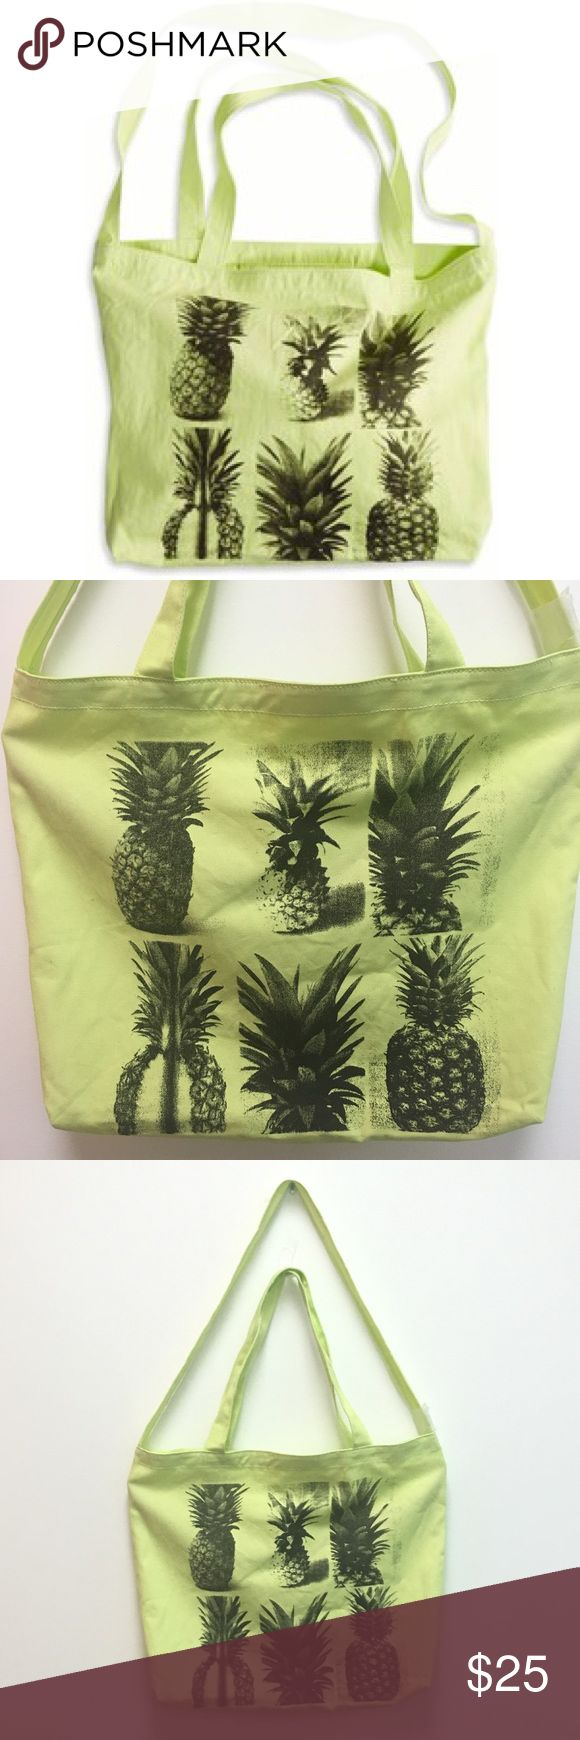 ✨FLASH SALE💫NWT Pineapple Tote Bag Yellow canvas tote bag with pineapple print. Has 3 handles so you can use it two different ways. Long strap, 2 shorter straps and an inner pocket for smaller items. Tag fell off but the plastic tag holder is still attached.   ❌ trades ❌ lowballs  👍offer button  🌟Bundle 2 or more items and save 10%🌟 American Eagle Outfitters Bags Totes